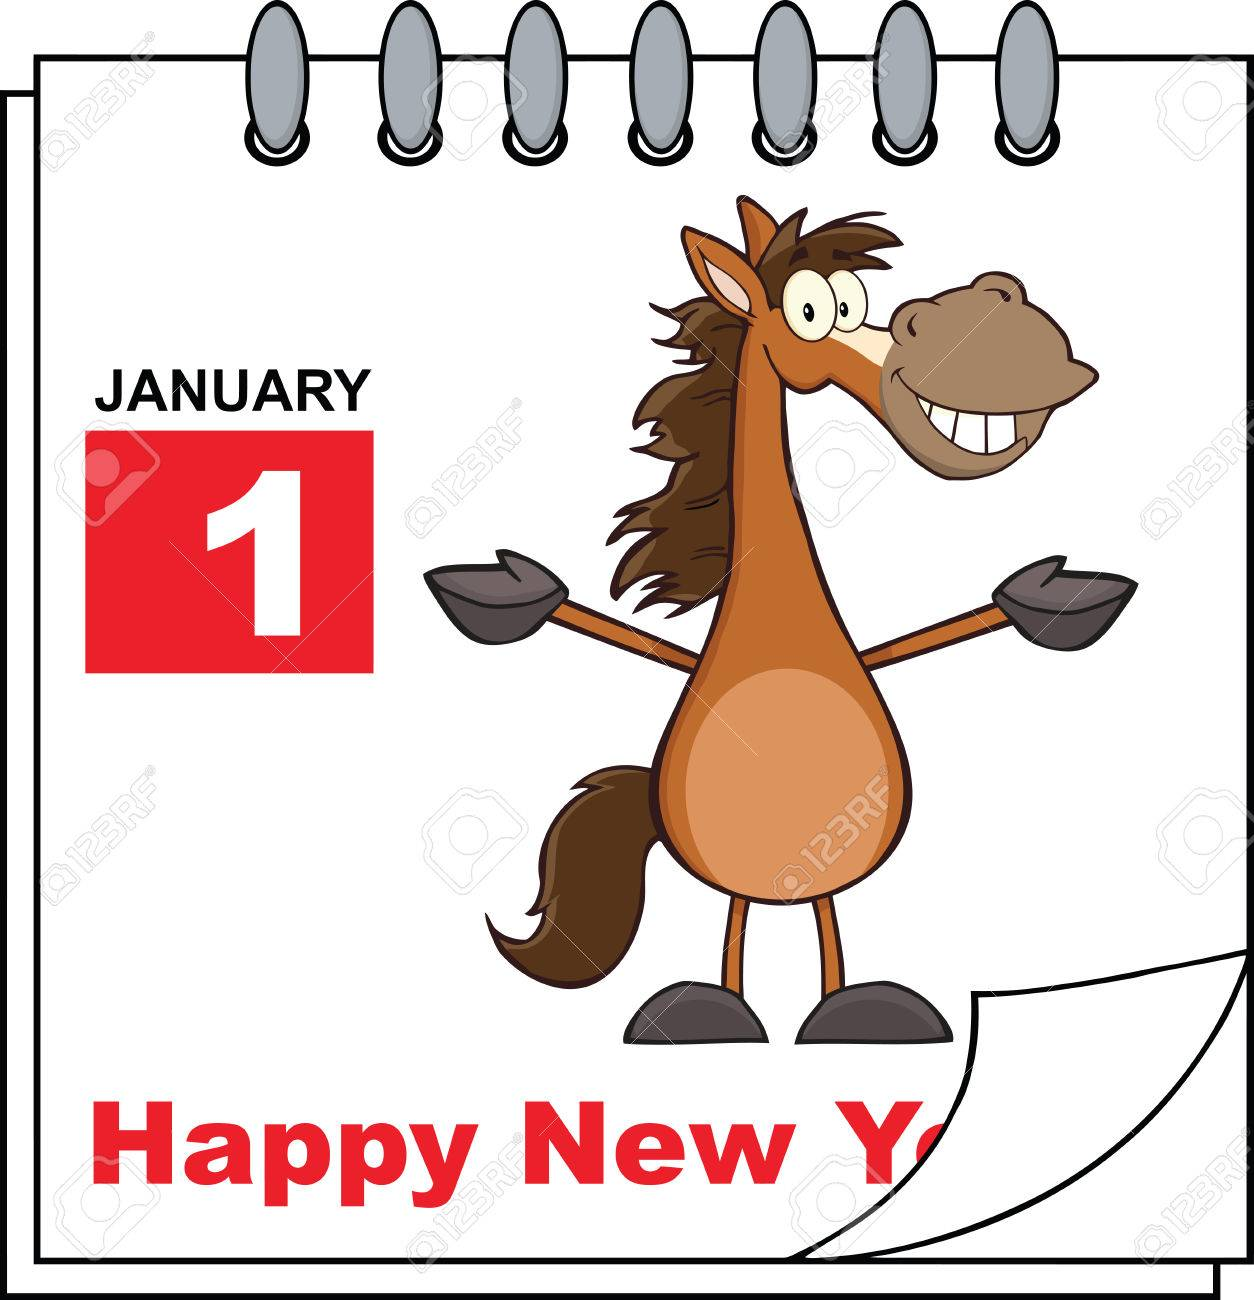 Happy New Year Horse Images 14